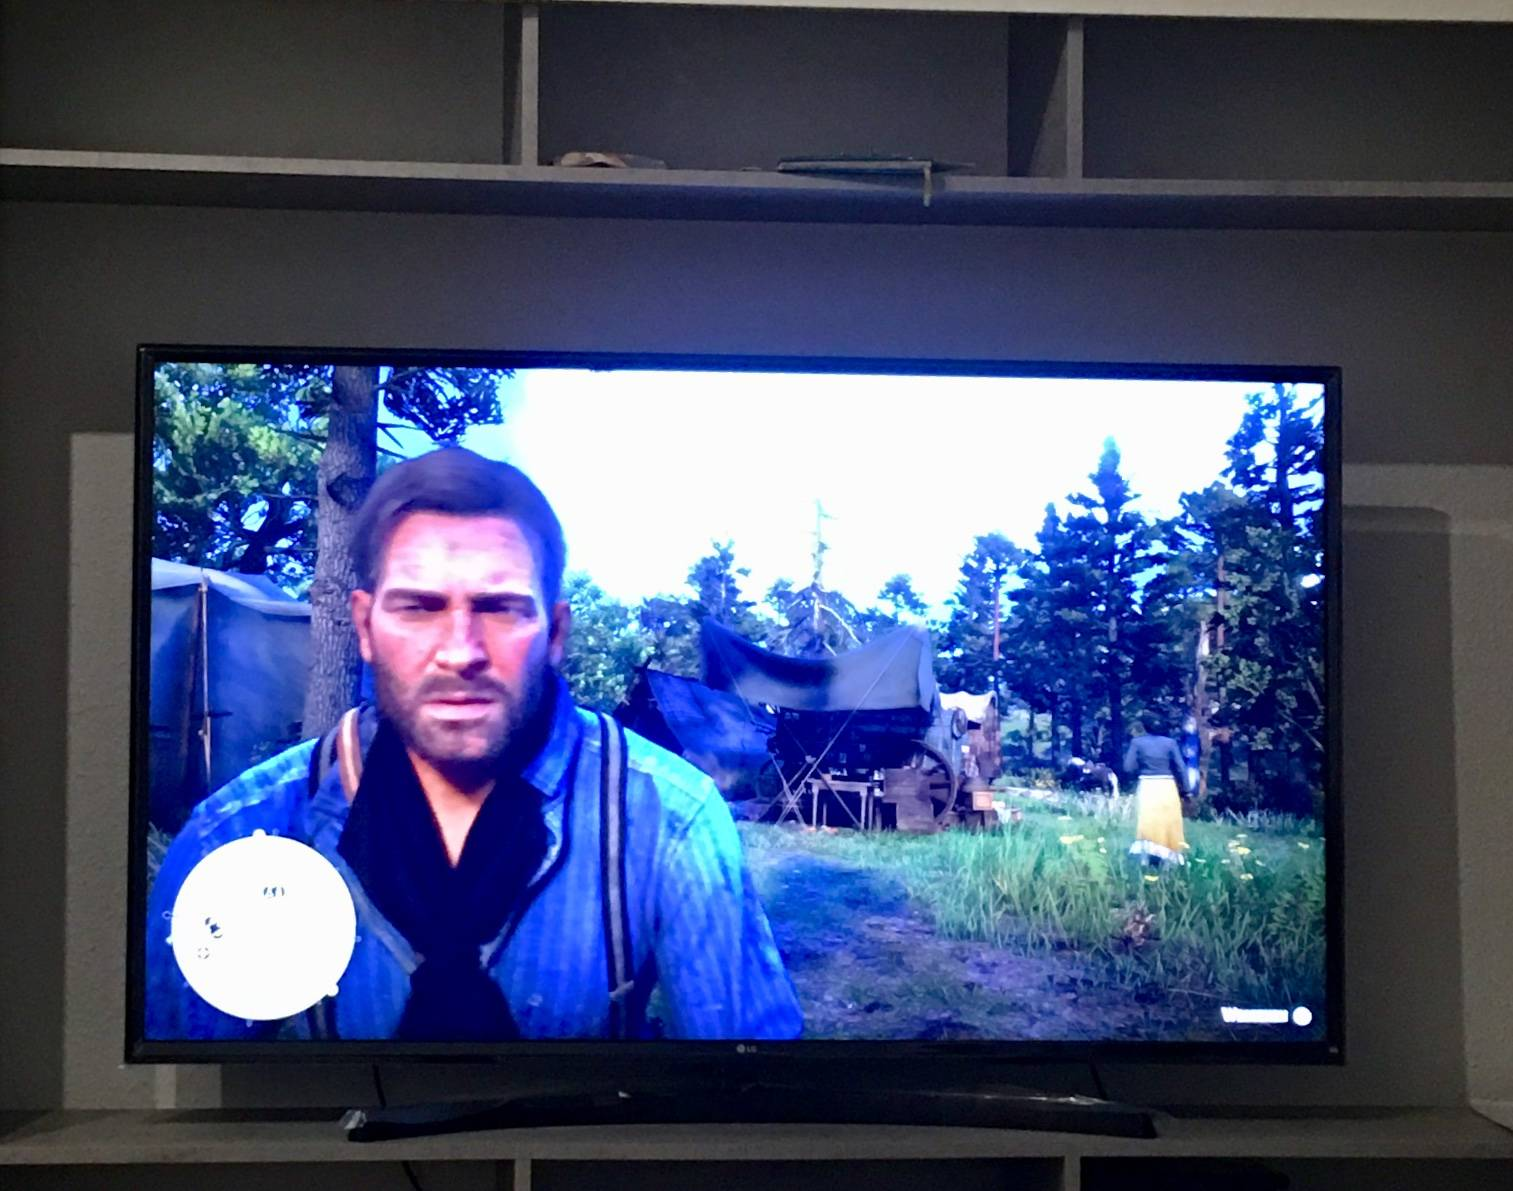 Rdr2 graphics blurry PS4 Pro - Page 8 - Red Dead Redemption 2 - RDR2